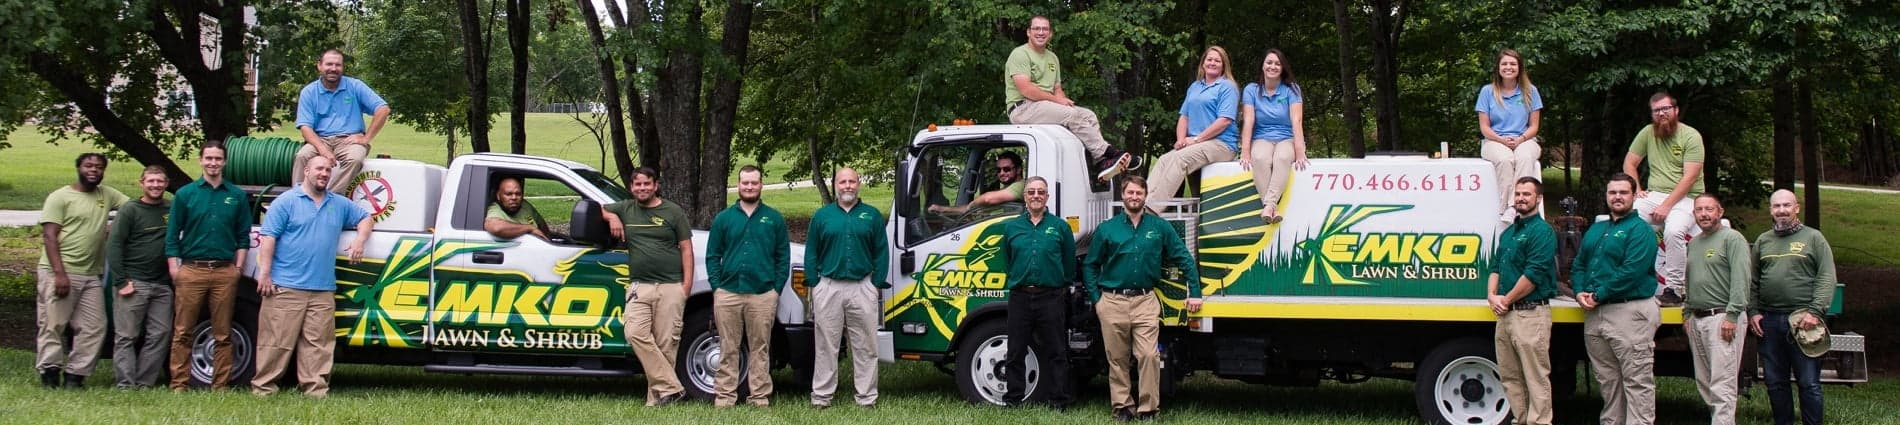 Atlanta Lawn Care Tree Shrub Services Loganville Cumming